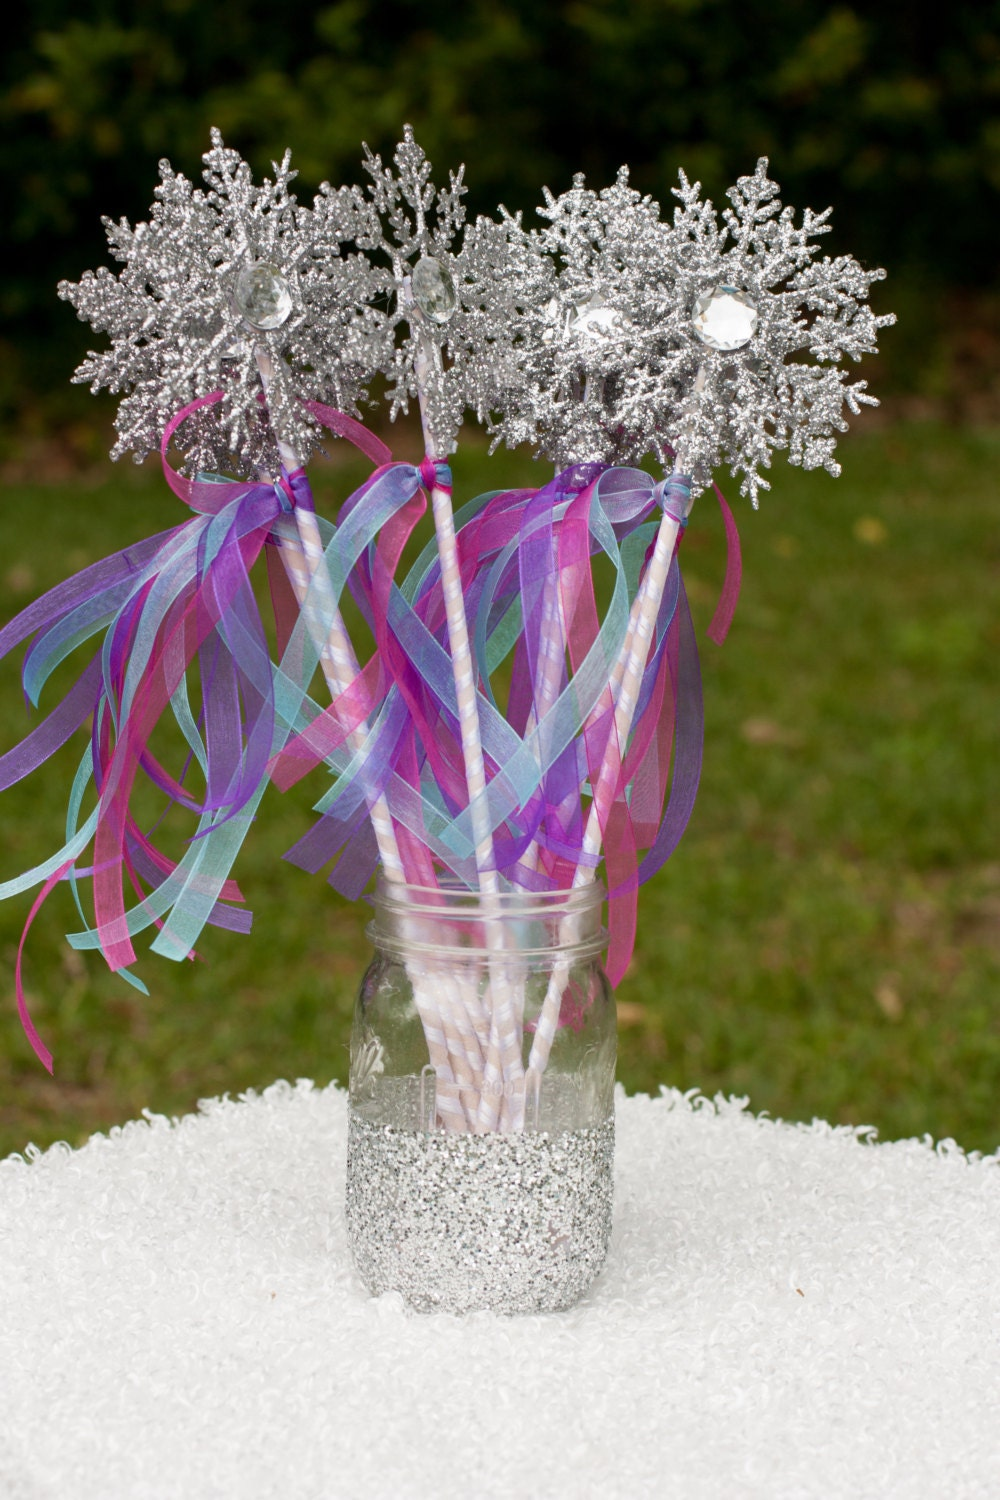 20 frozen snowflake party wands by gracesgardens on etsy for Birthday wand